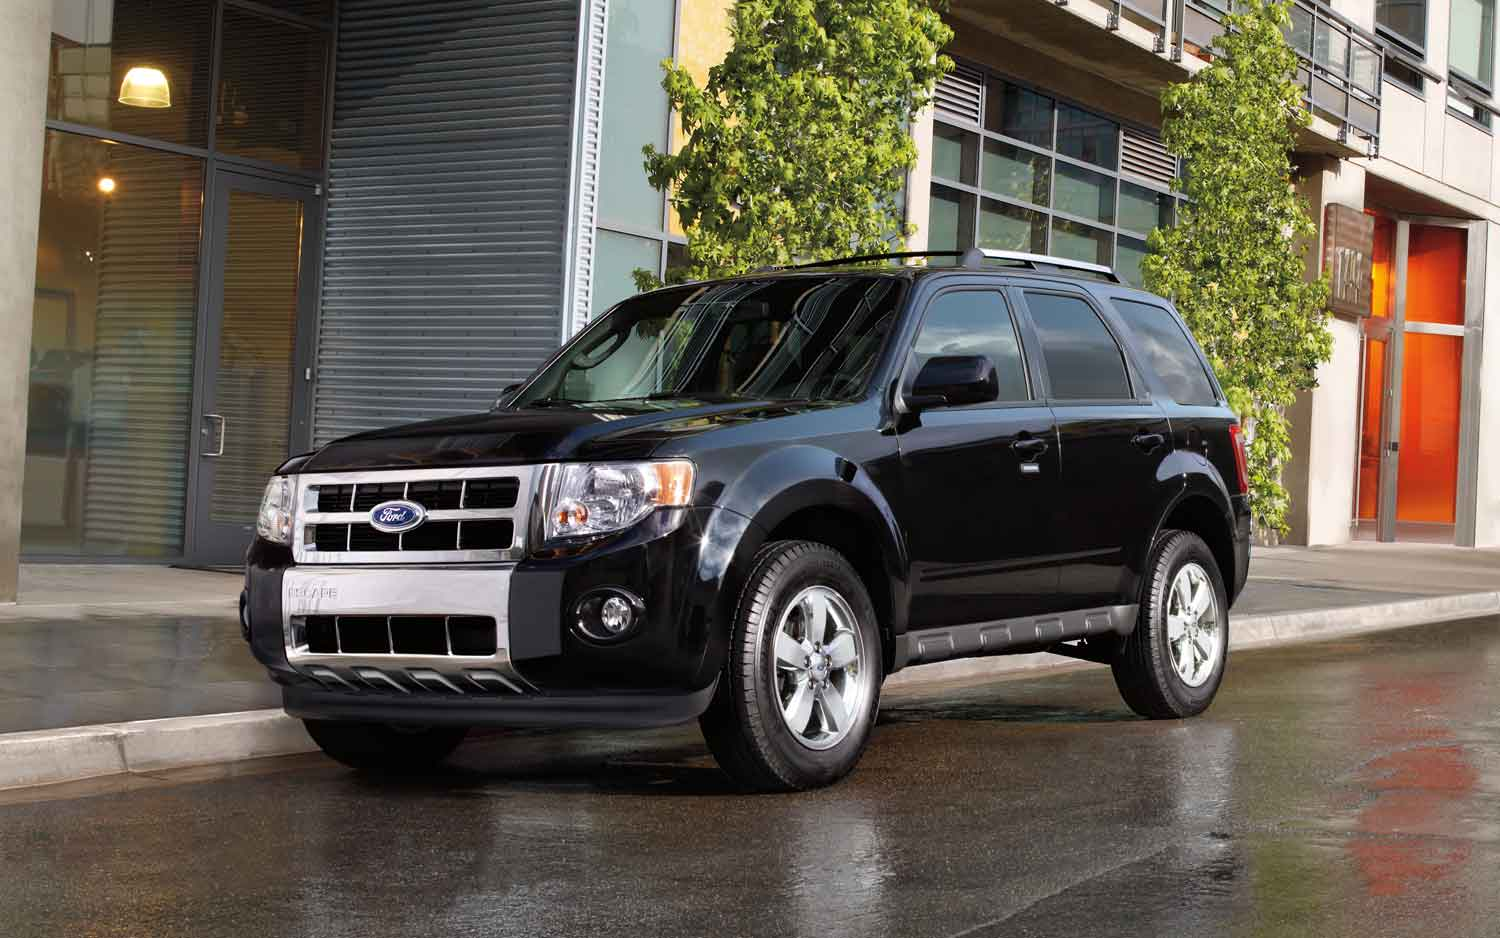 2011 Ford Escape Front View 11